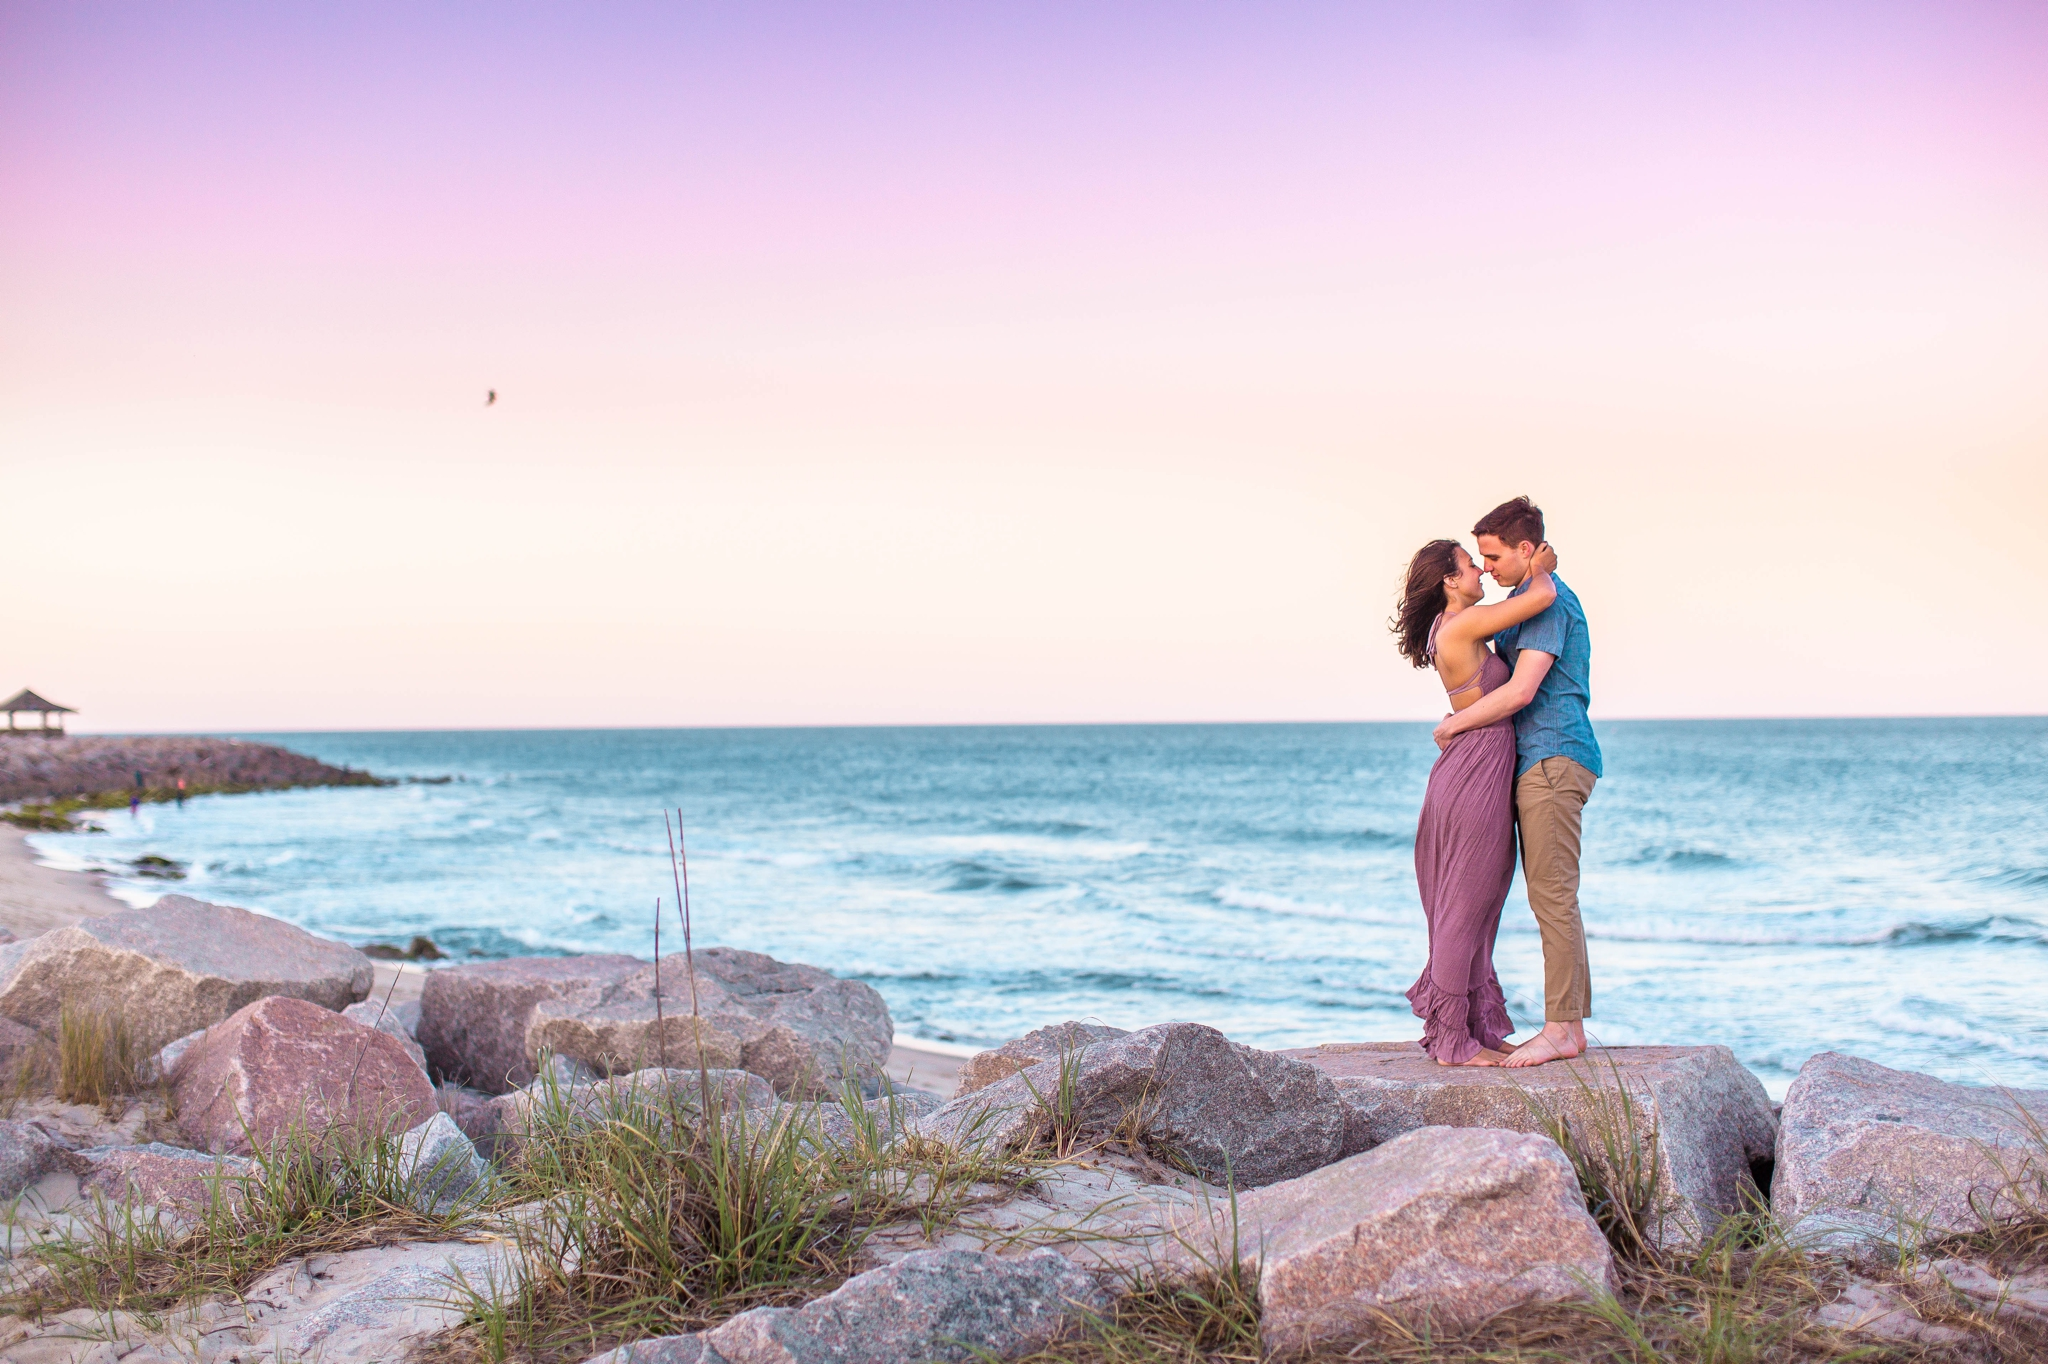 Couple kissing on the cliffs at sunset - Woman is in a flowy pastel maxi dress - candid and unposed golden light session - beach engagement photographer in honolulu, oahu, hawaii - johanna dye photography